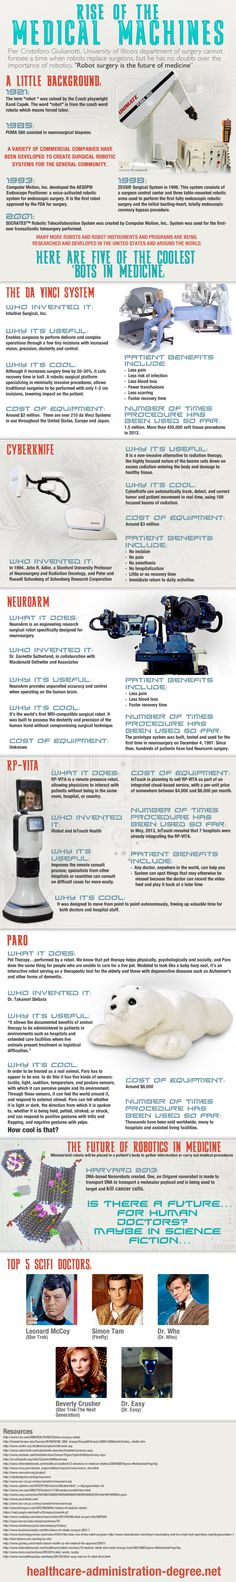 Robotic Surgery and Other Medical Machines - An Infographic Recommended Health Infograpics